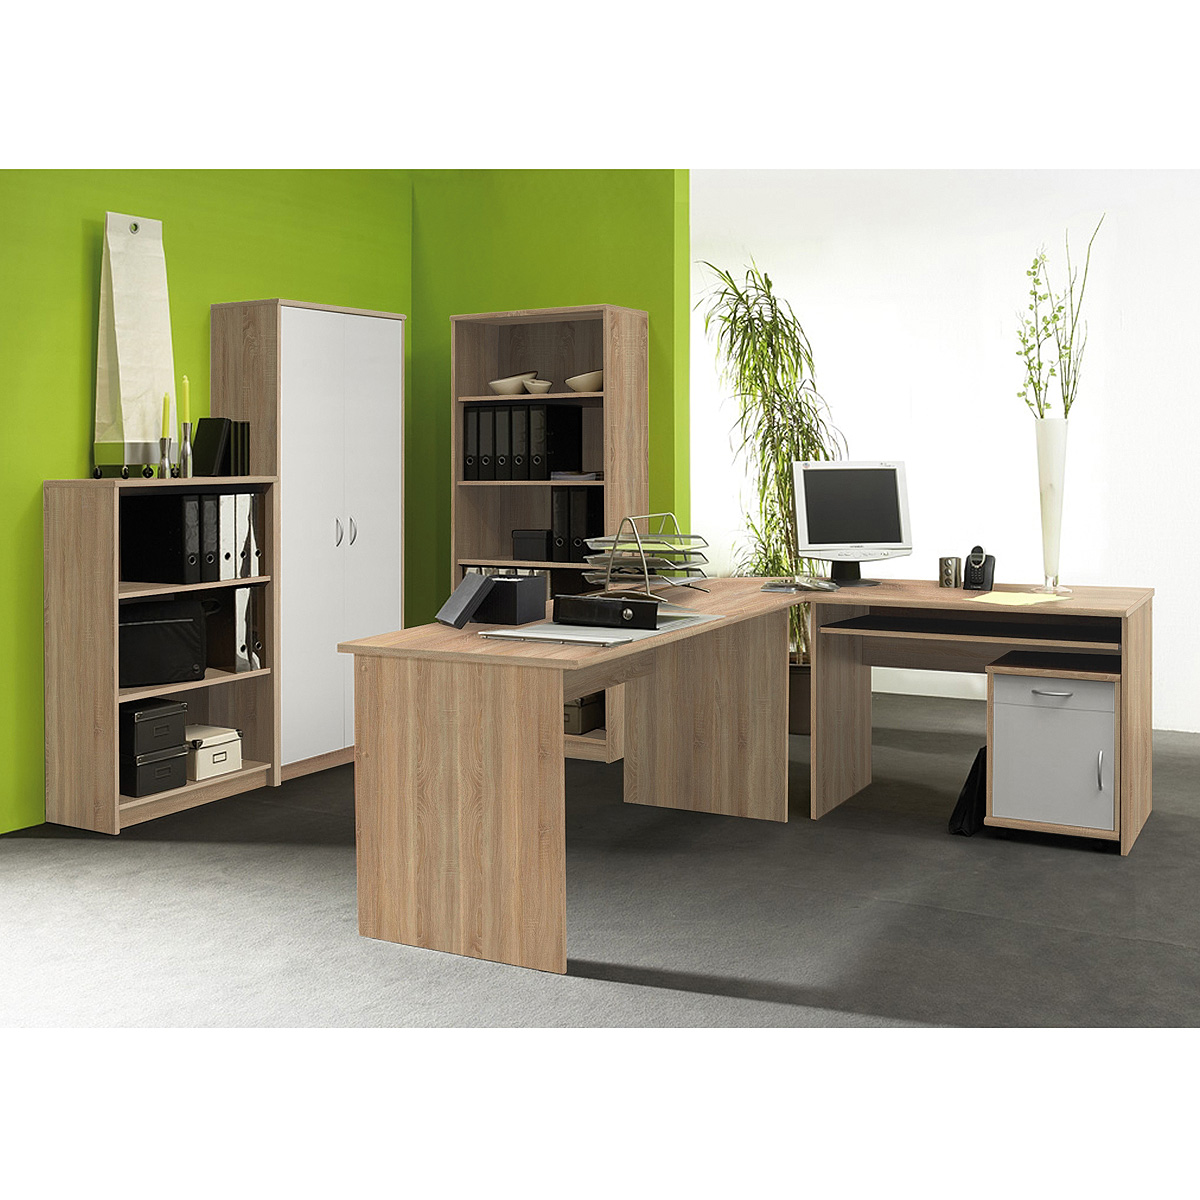 b roset office compact b roprogramm b ro schreibtisch regal in sonoma eiche wei ebay. Black Bedroom Furniture Sets. Home Design Ideas